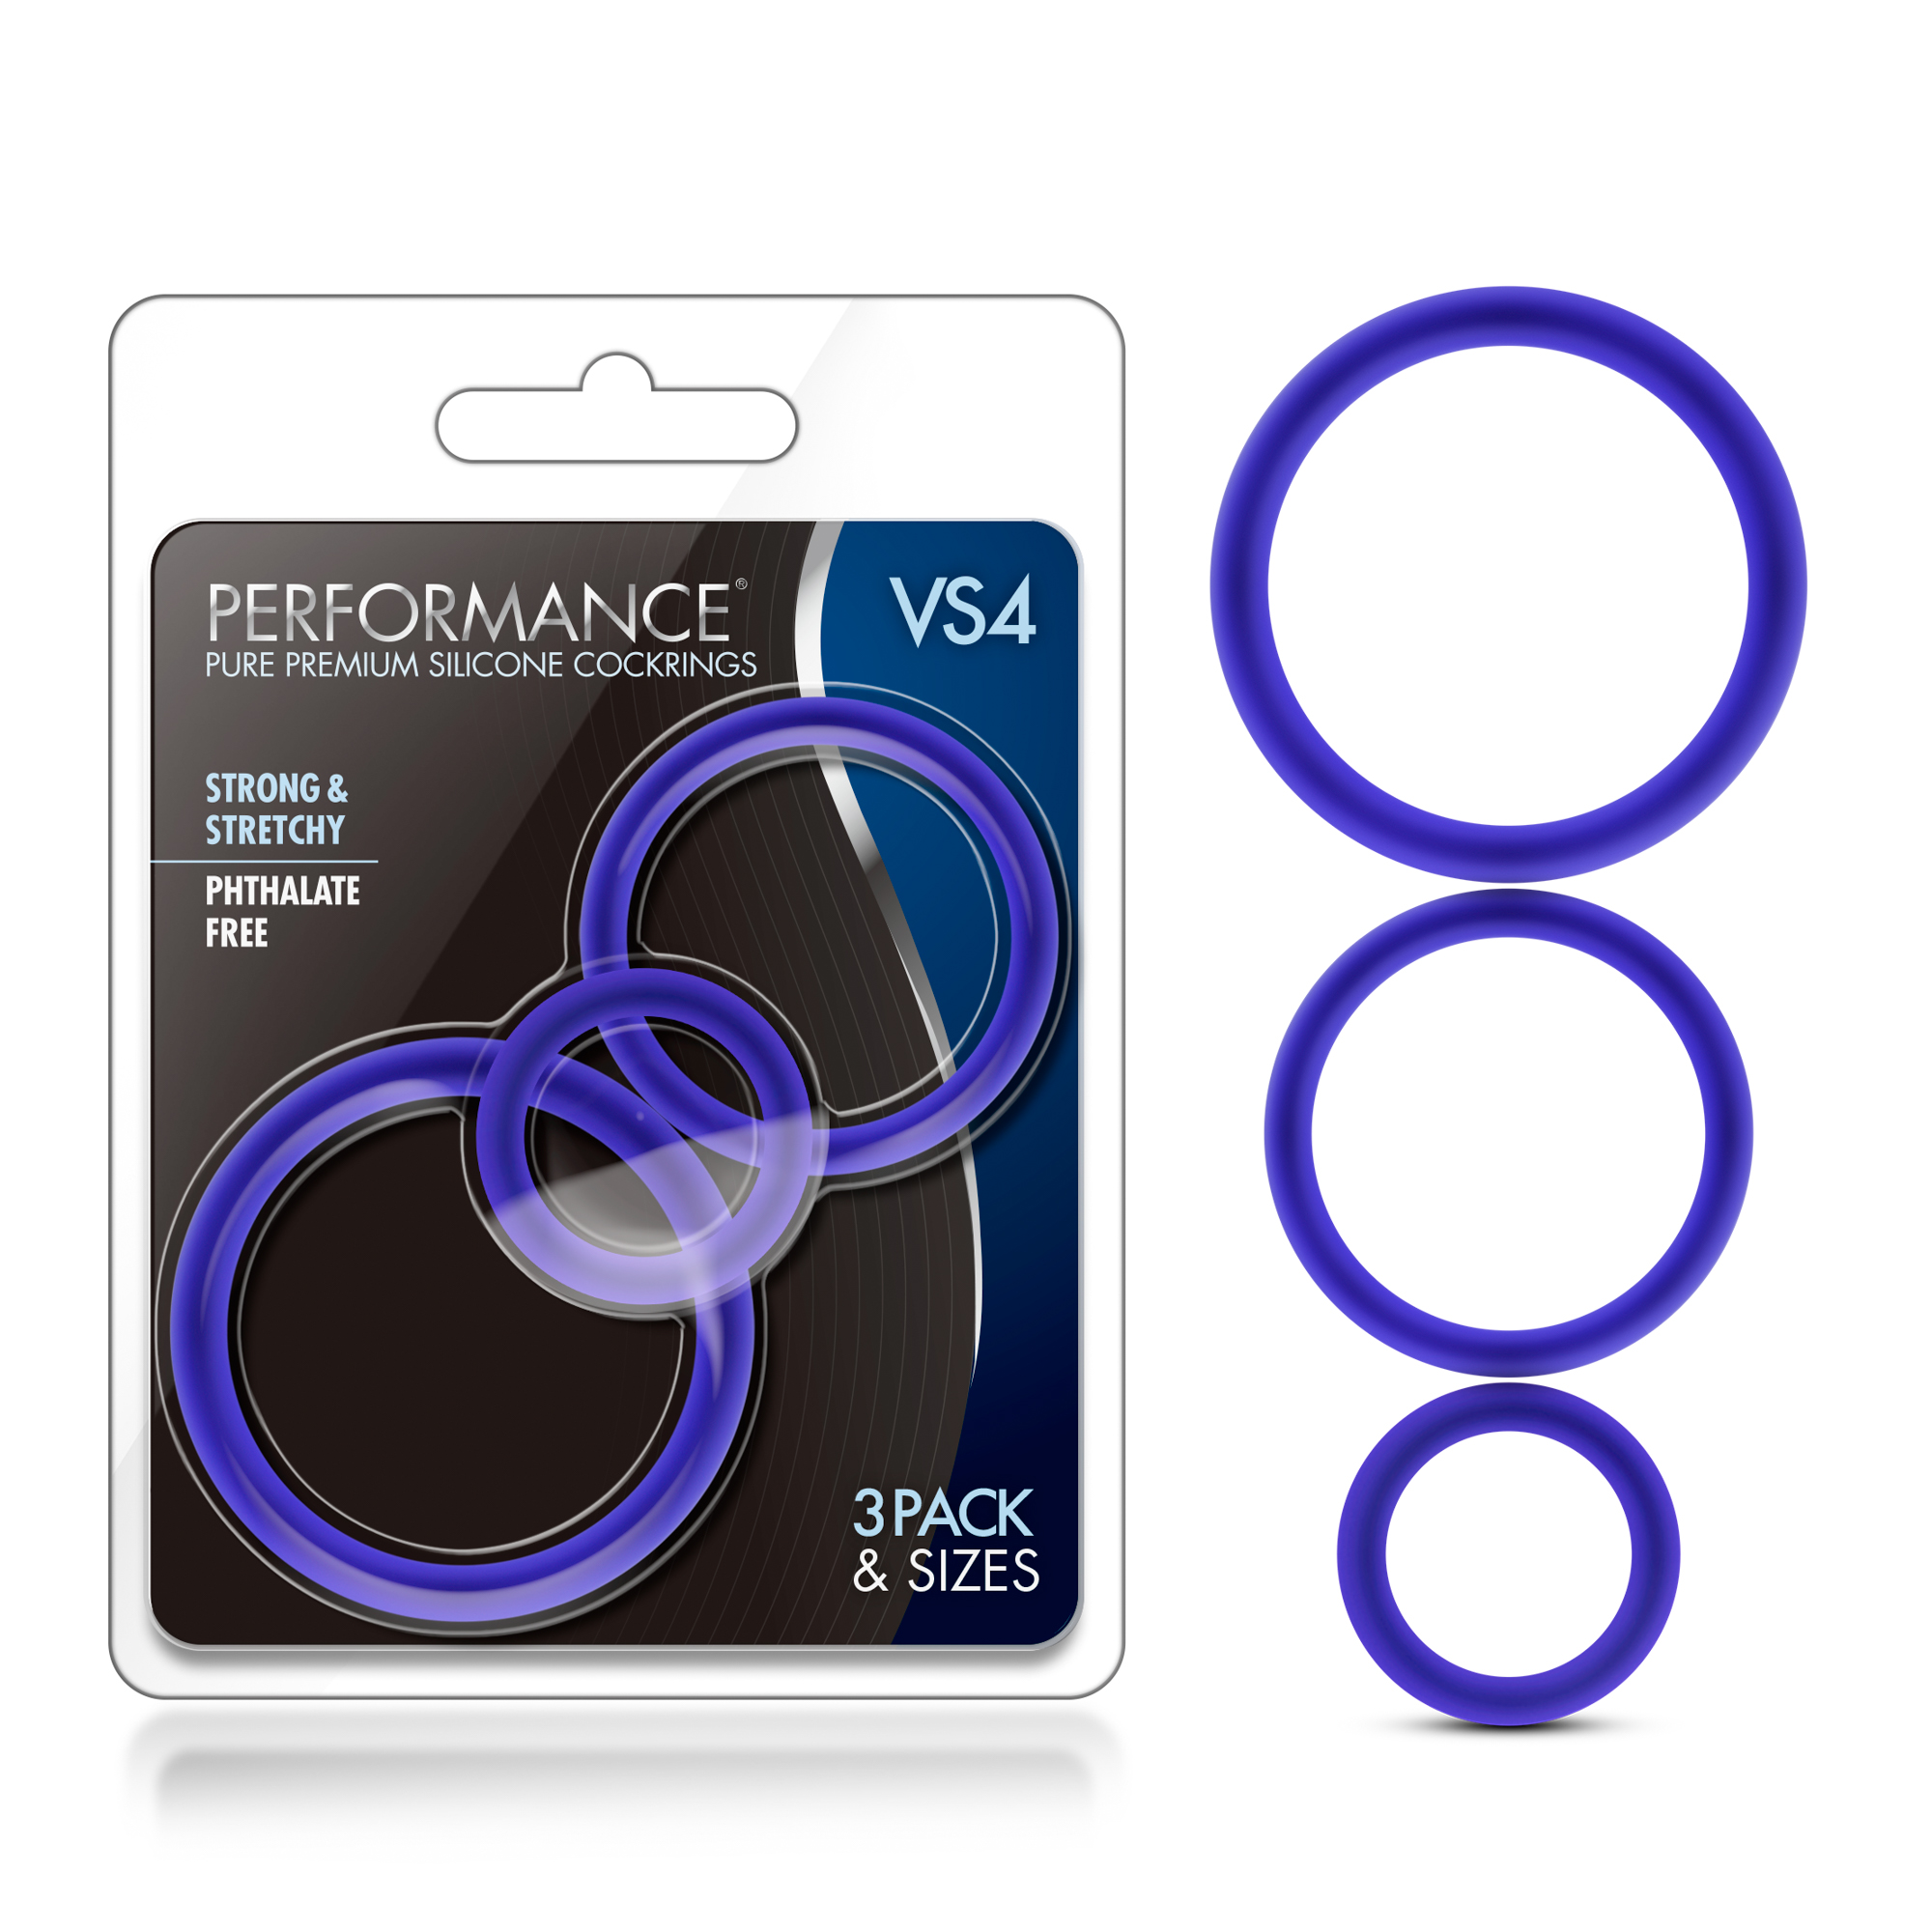 Performance - VS4 Pure Premium Silicone Cock Ring Set - Indigo